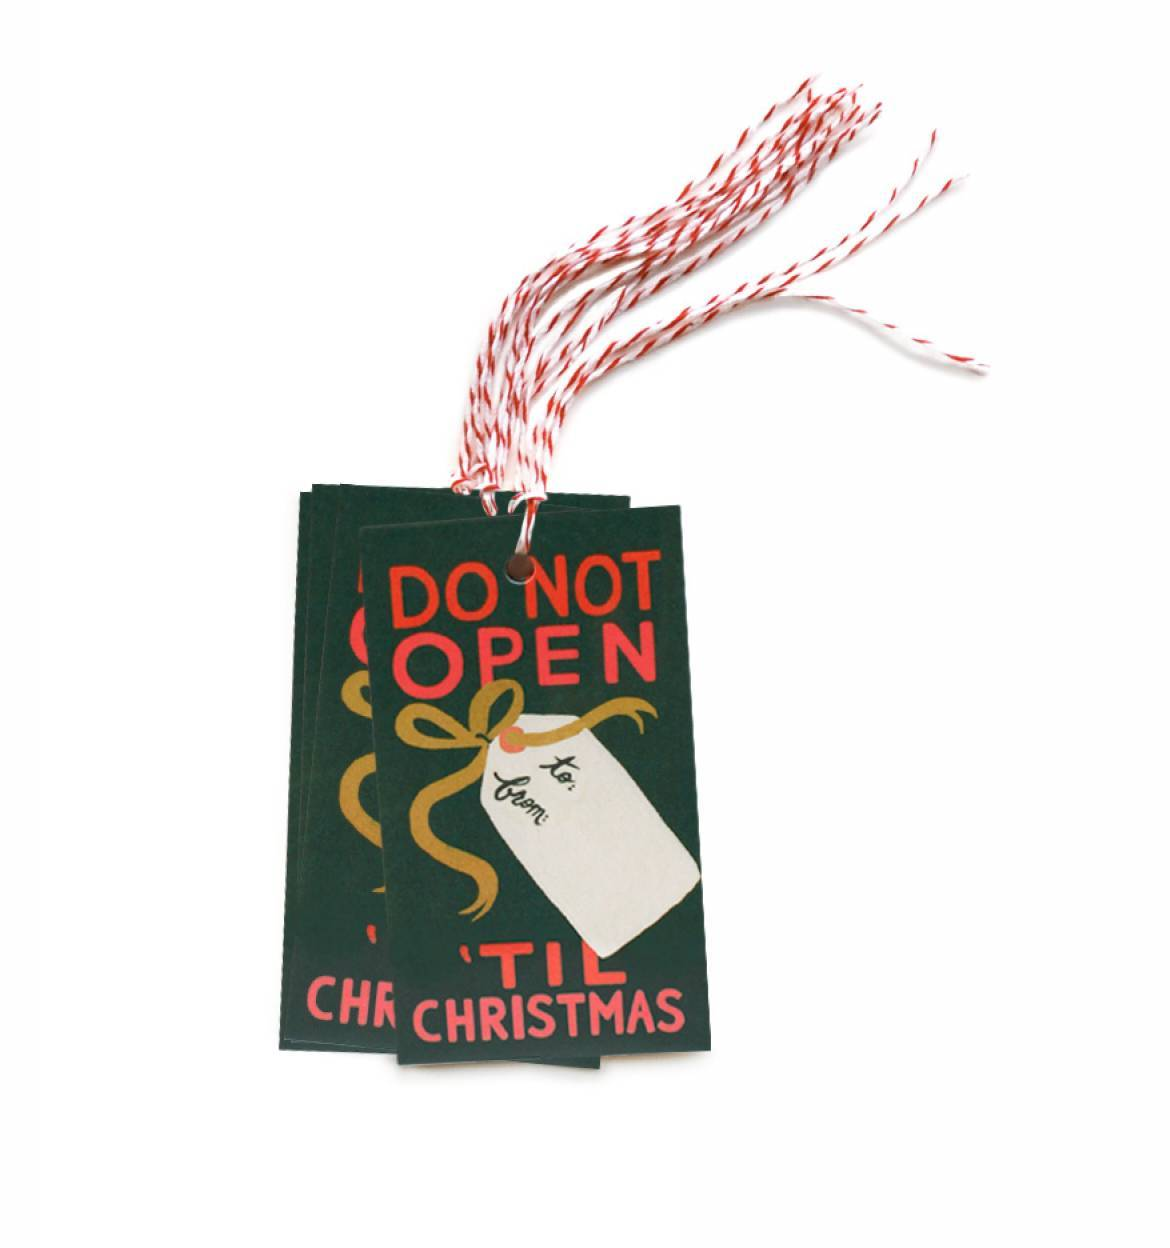 RIFLE - Do not open until christmas tags